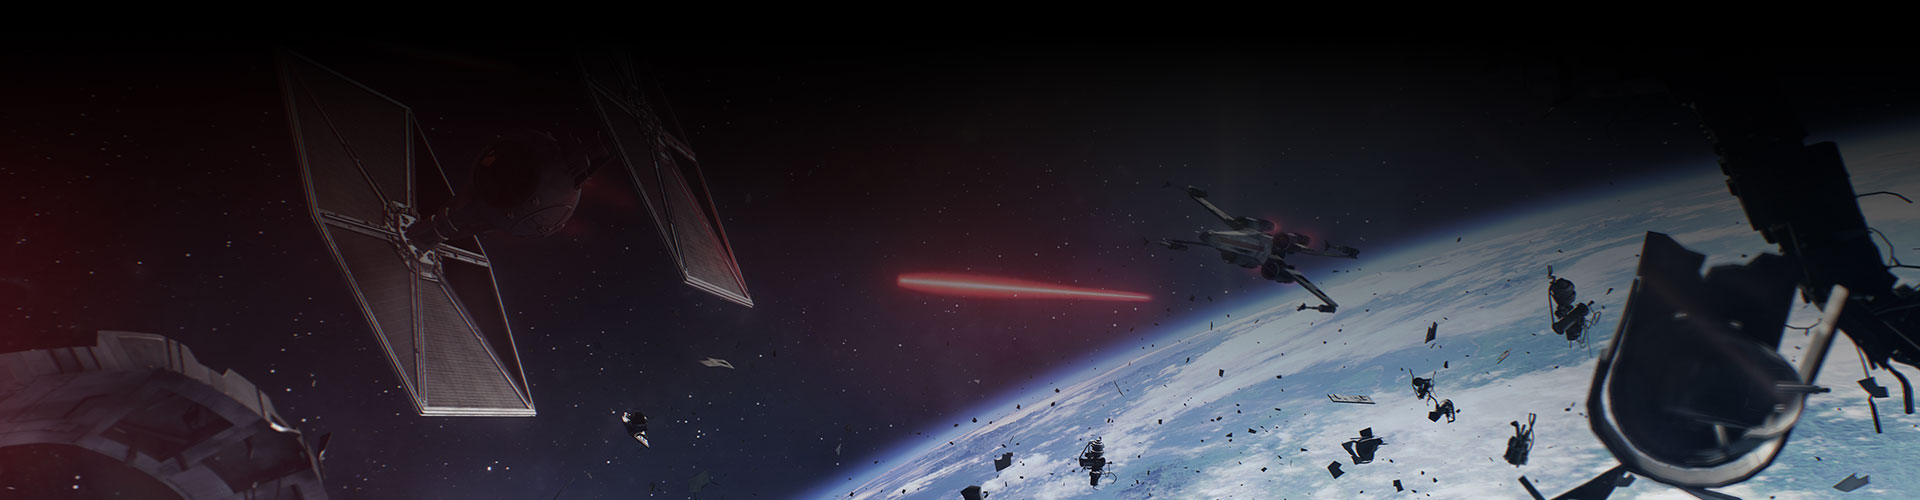 An X-wing shoots at a TIE fighter in a galactic scale space battle